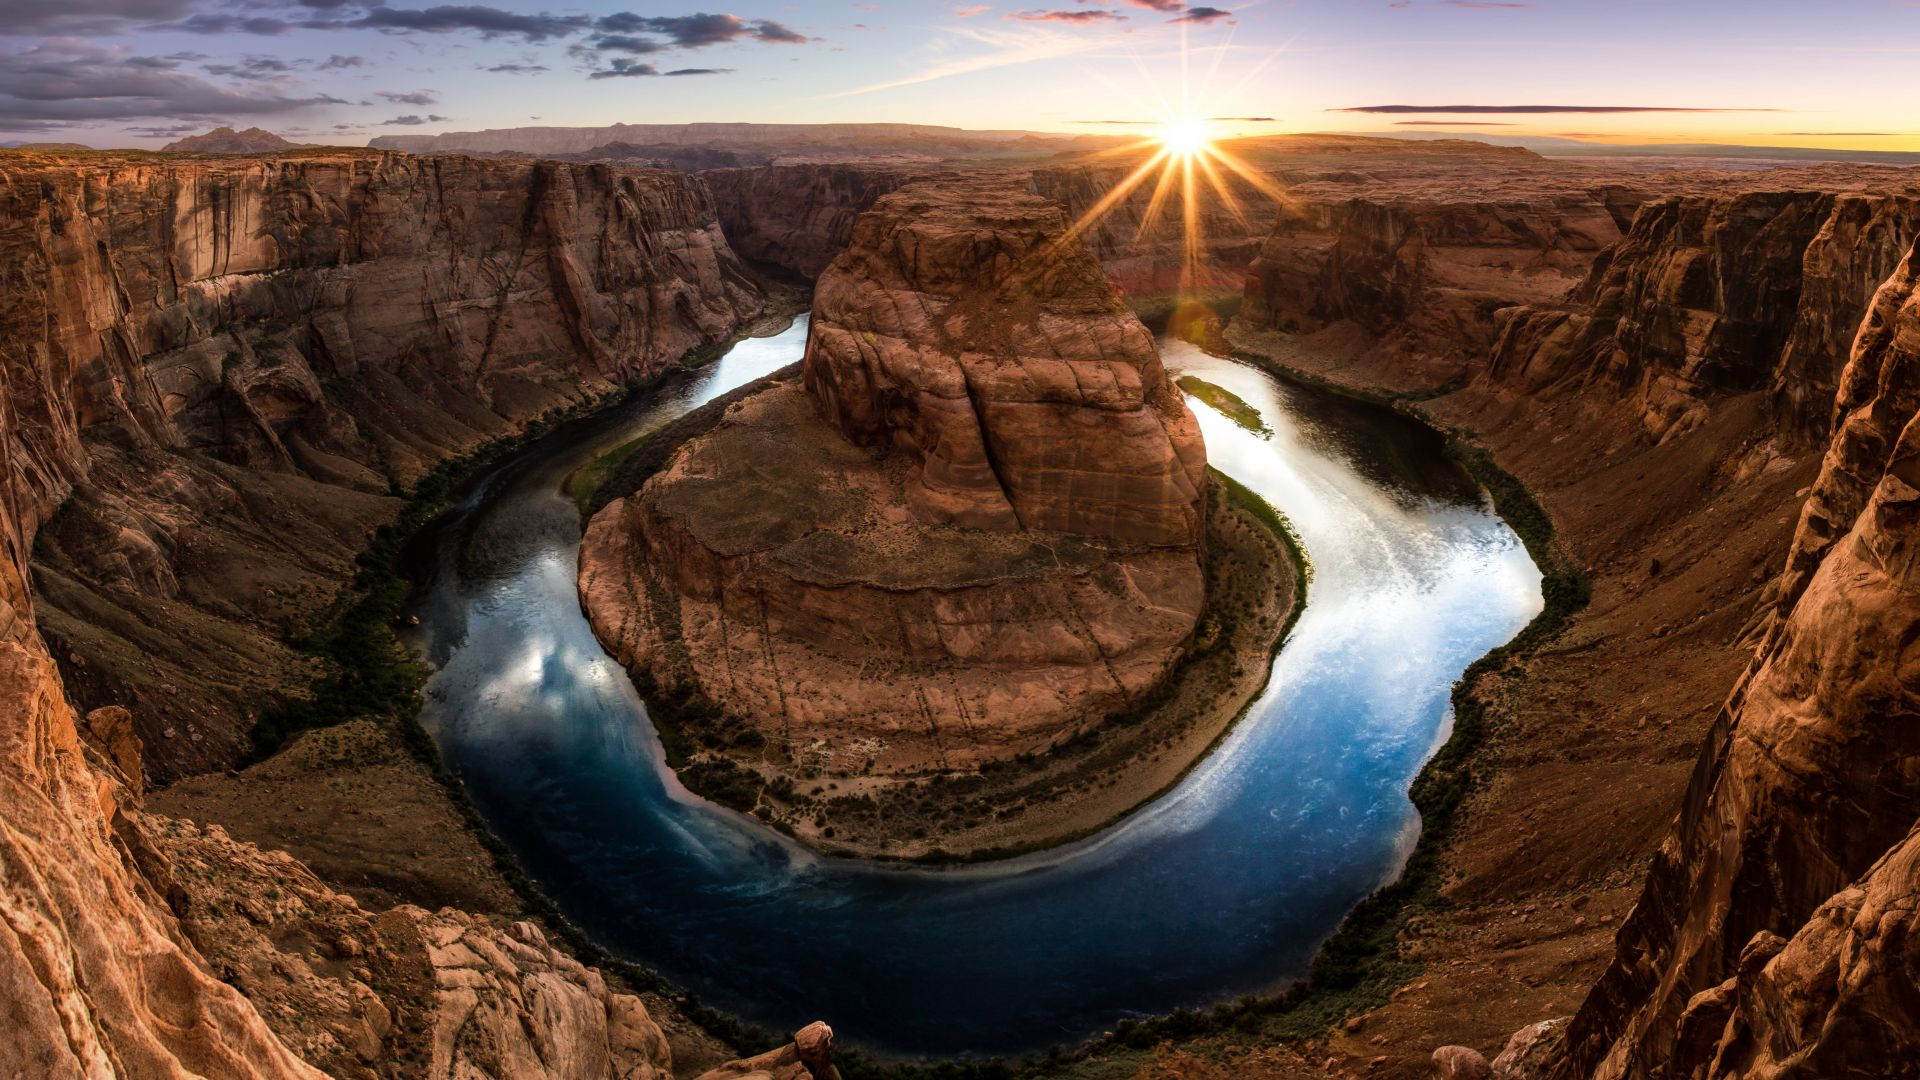 Хорсшу-Бенд, Подкова, США, Horseshoe Bend, Arizona, USA, 8k (horizontal)